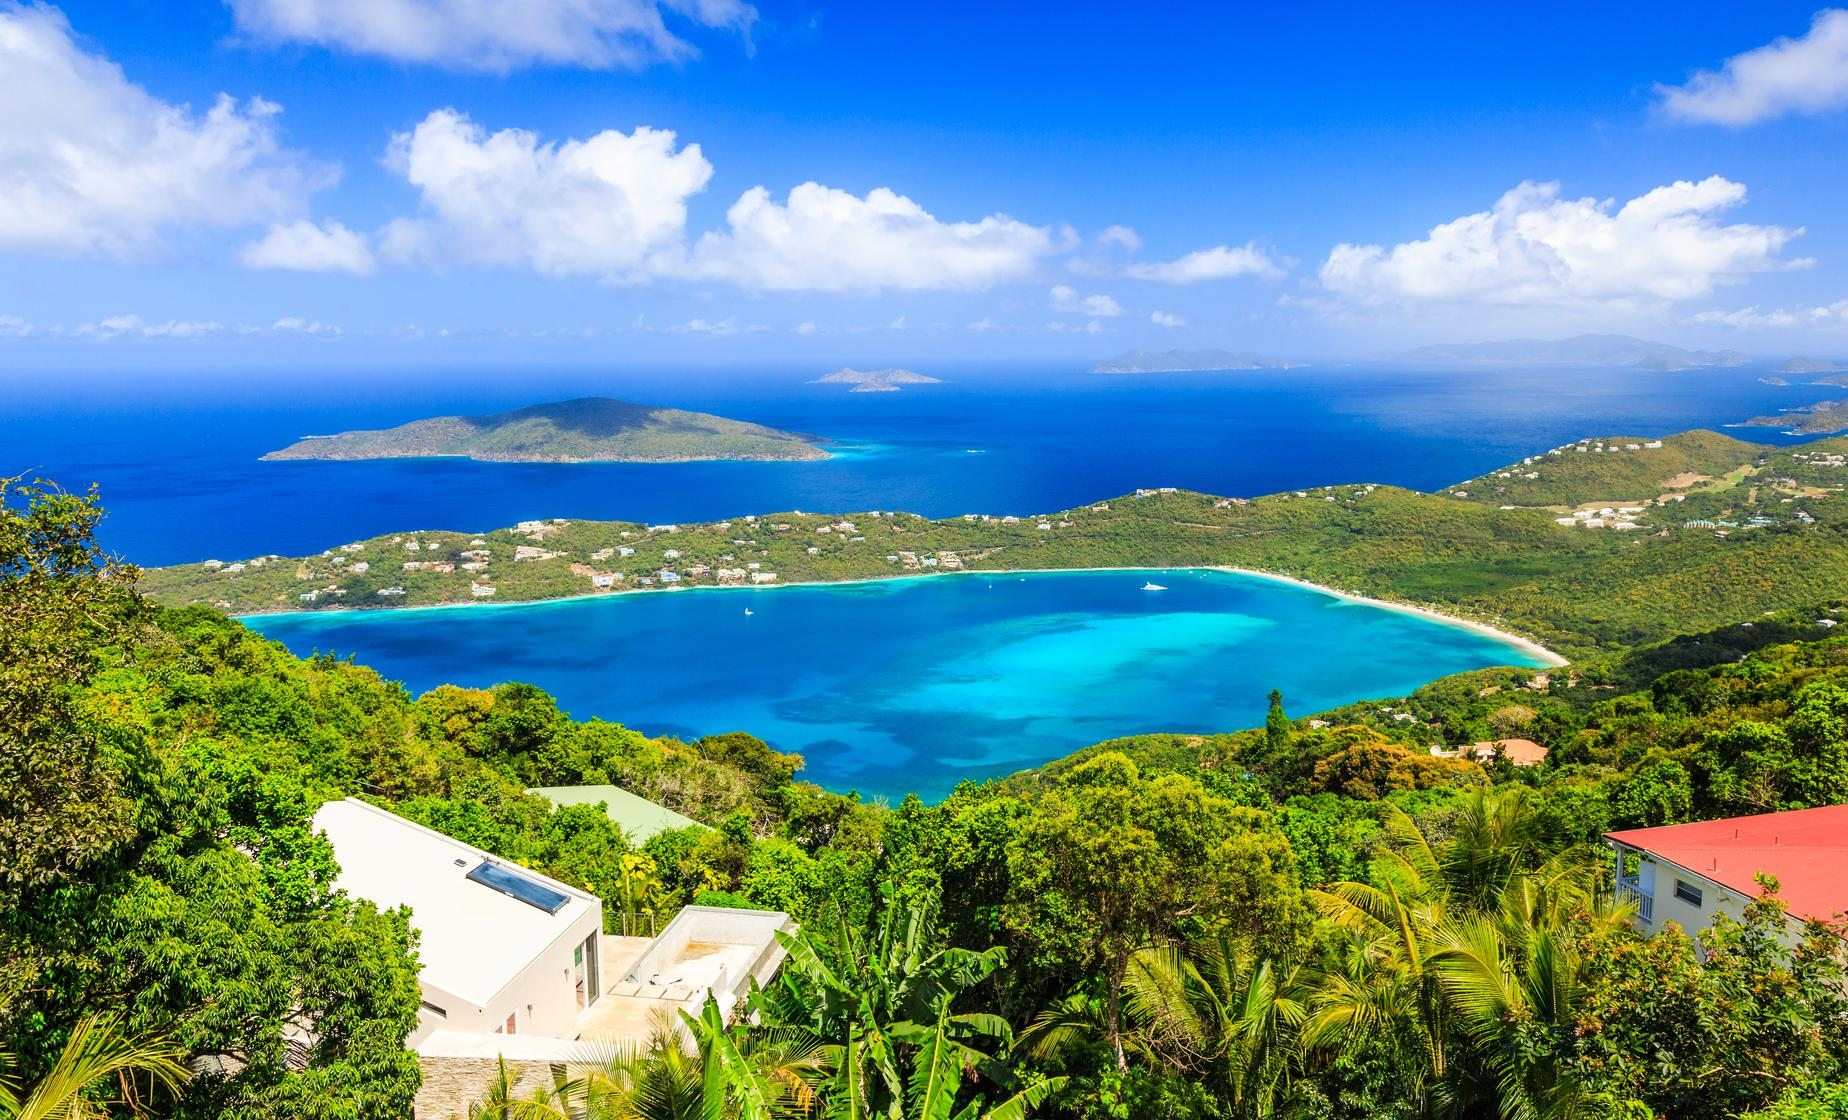 st thomas island overview